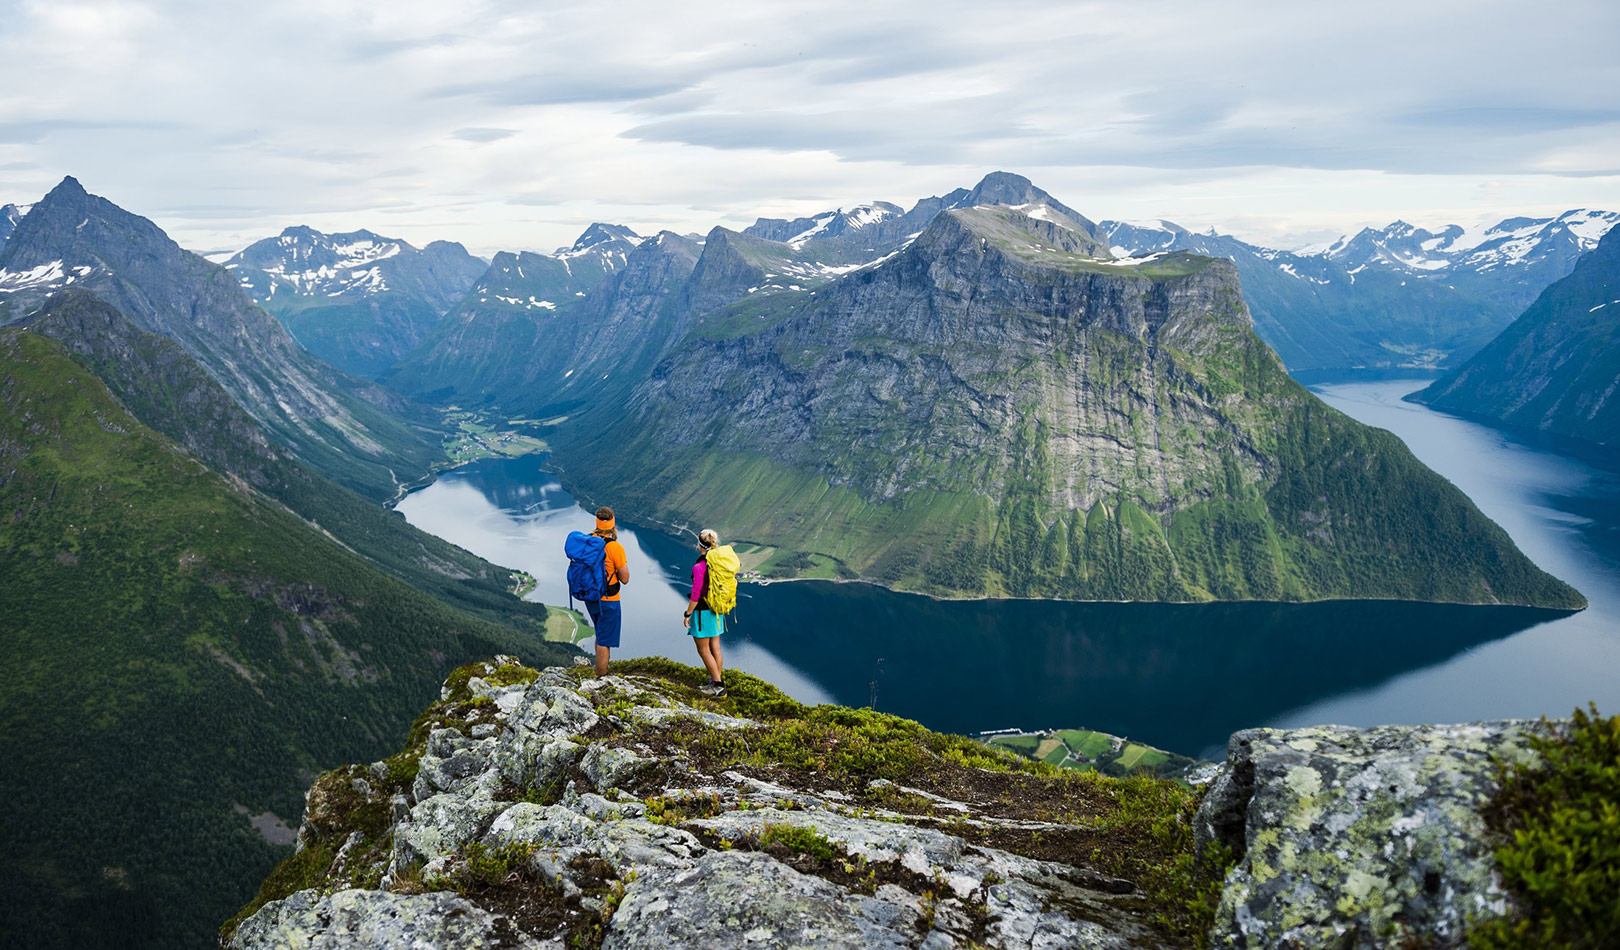 Two hikers enjoying the view on a mountain top in Sunnmøre,